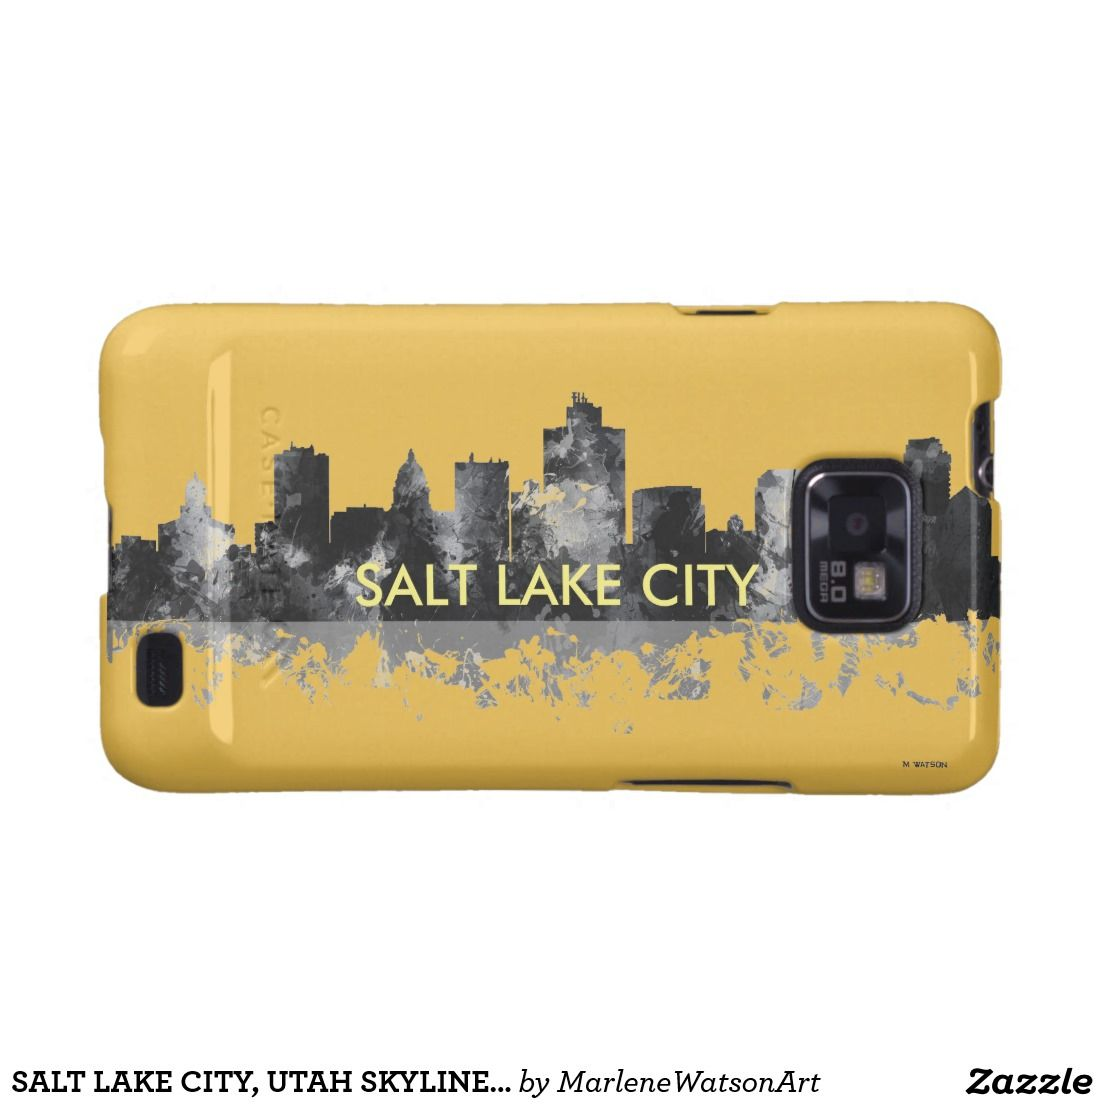 SALT LAKE CITY, UTAH SKYLINE - Samsung Galaxy S2 Samsung Galaxy SII Covers